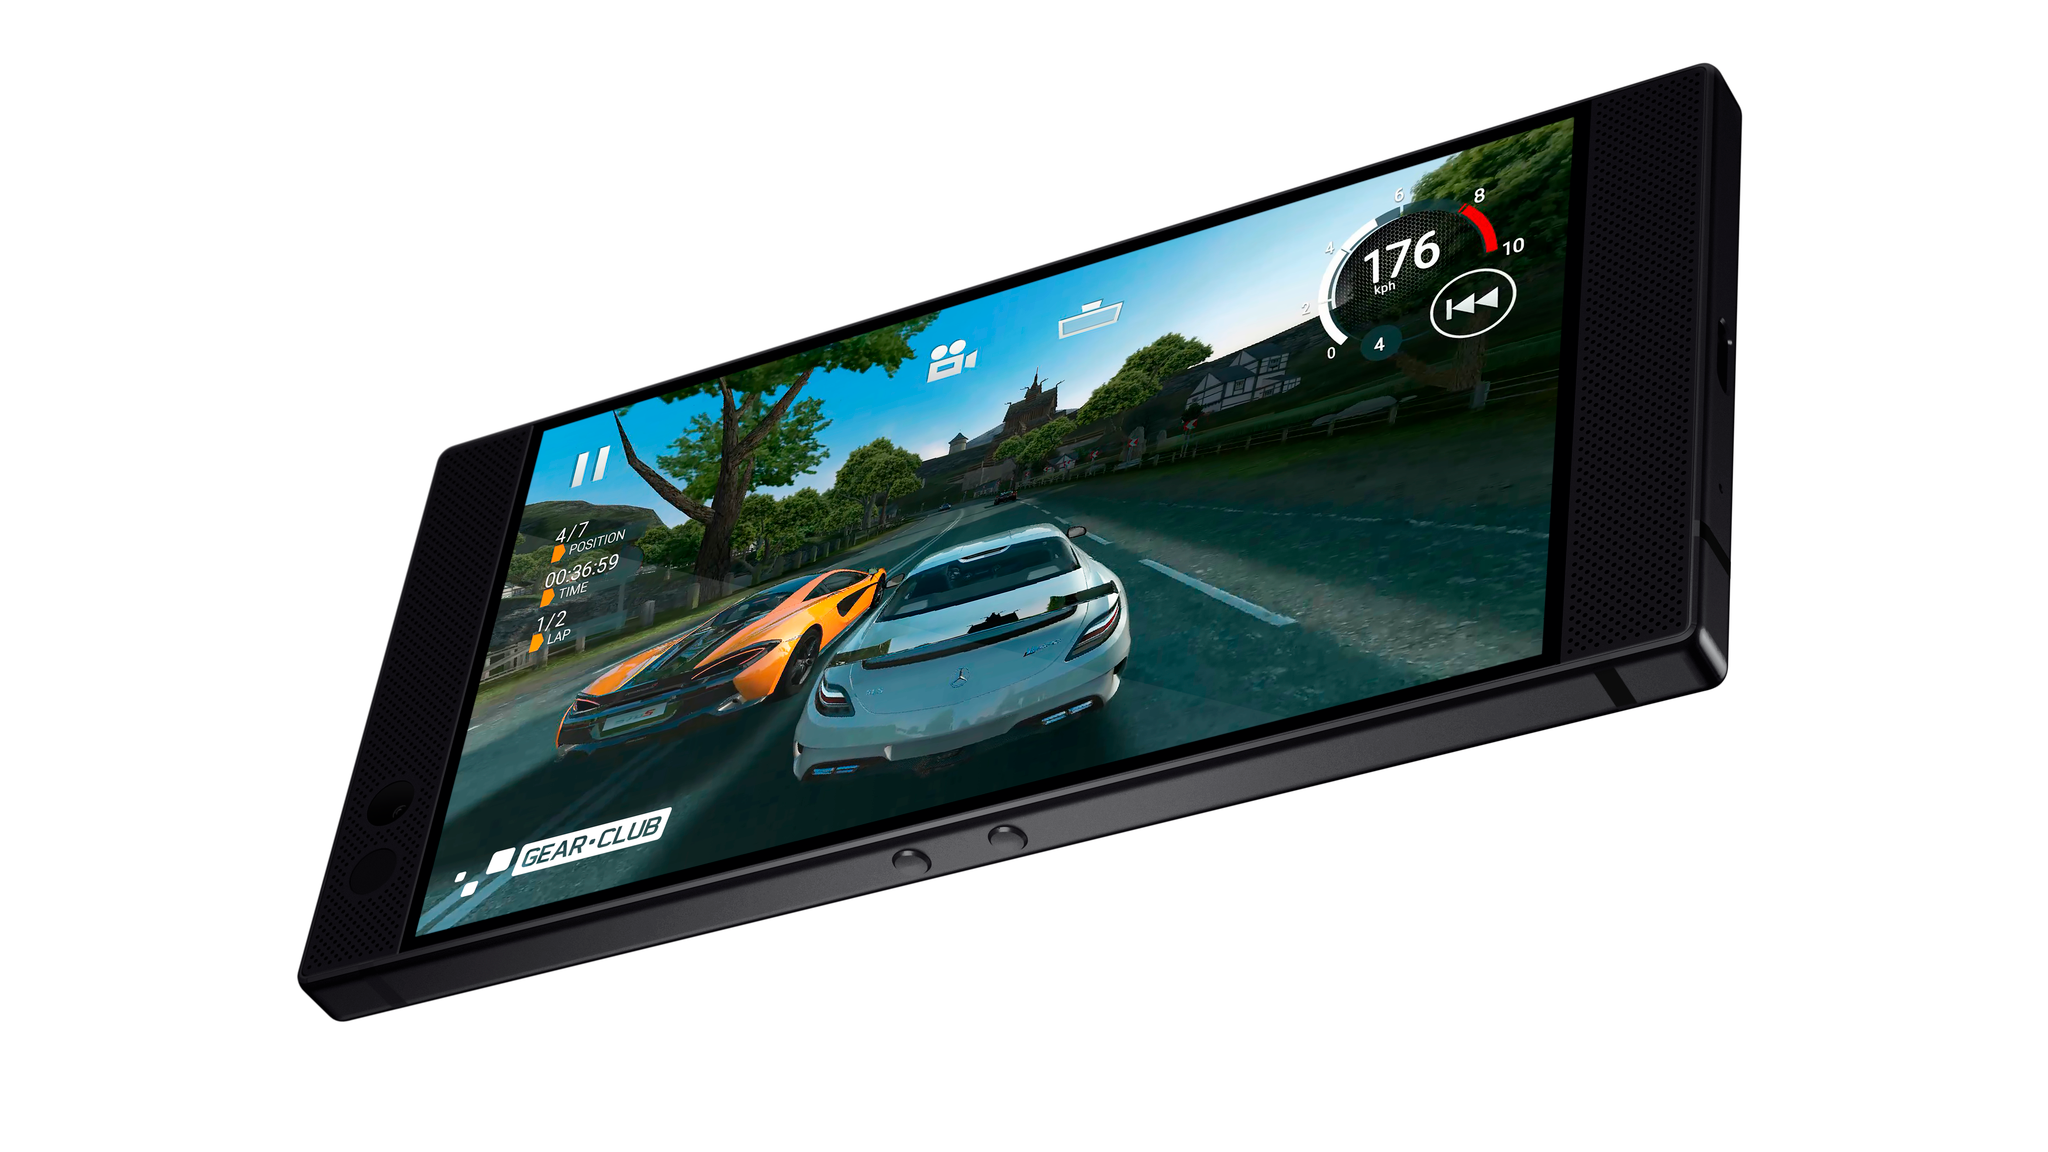 1509570651_razer-phone-games-gear-clubpreview.png